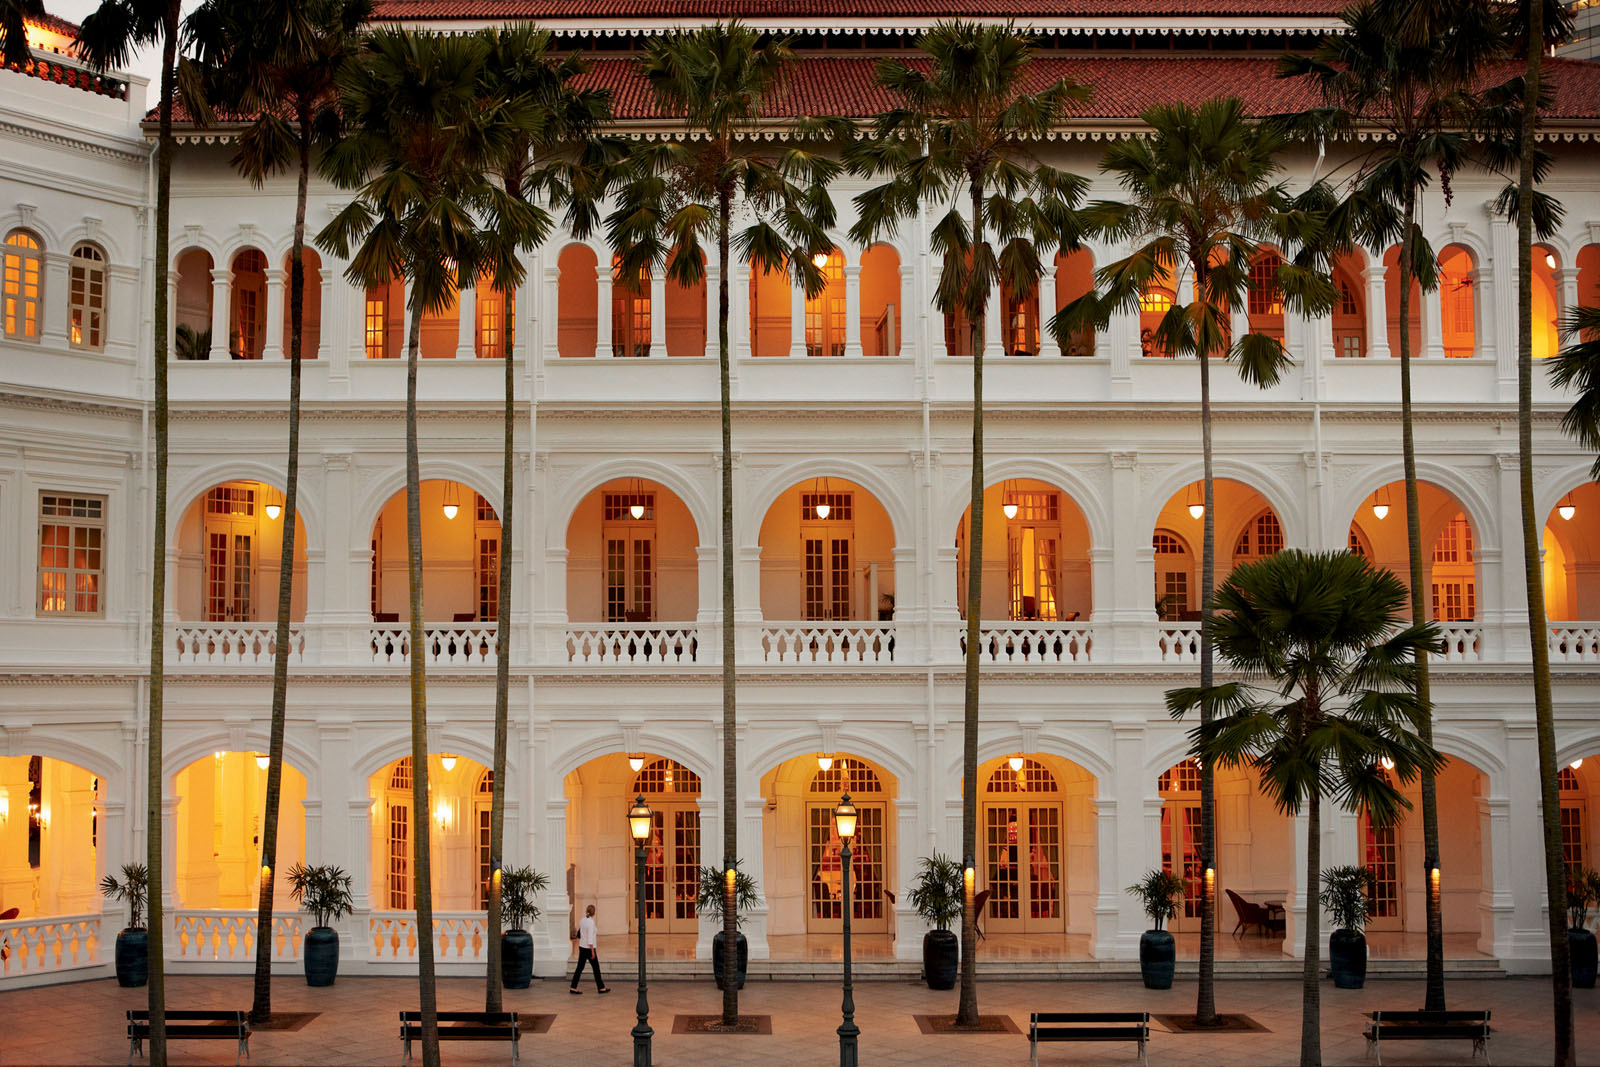 Raffles Singapore is an icon of British colonial architecture